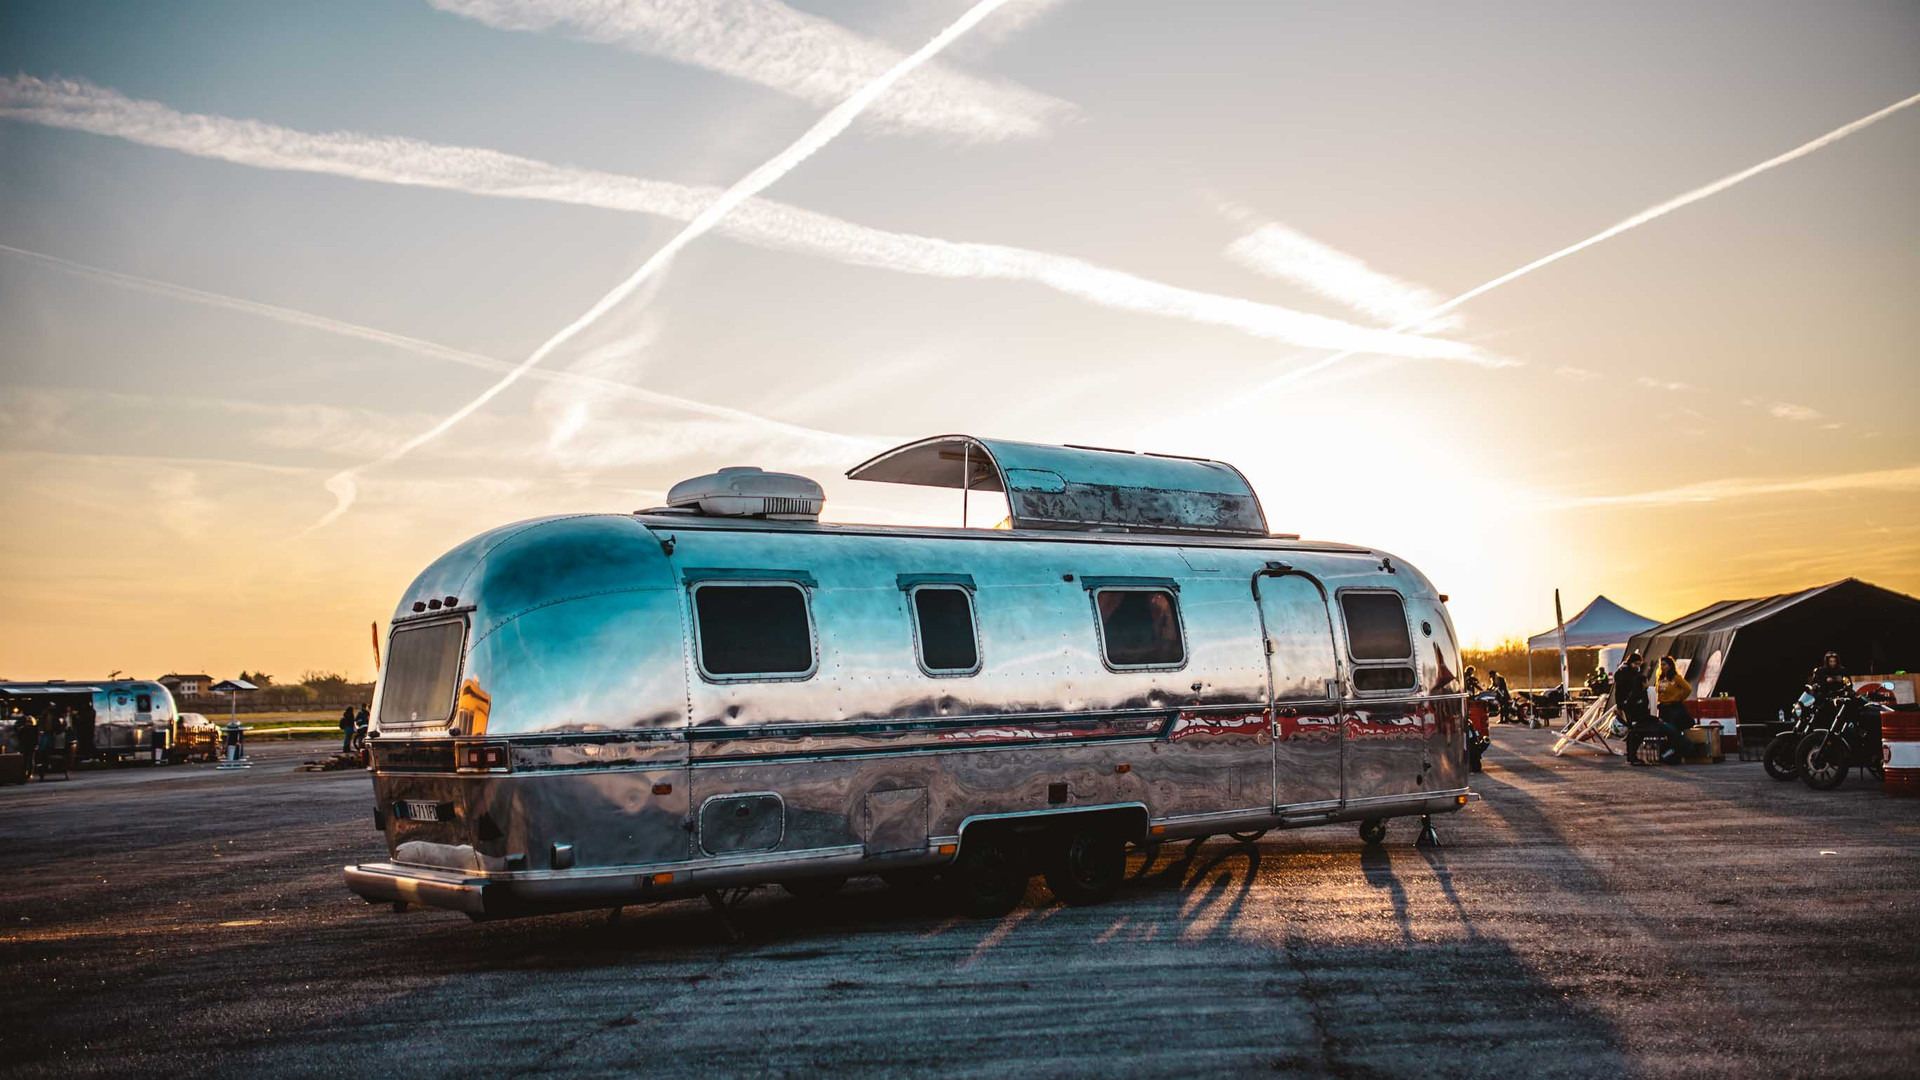 airstream 29feed by officine vivaldi at sunset